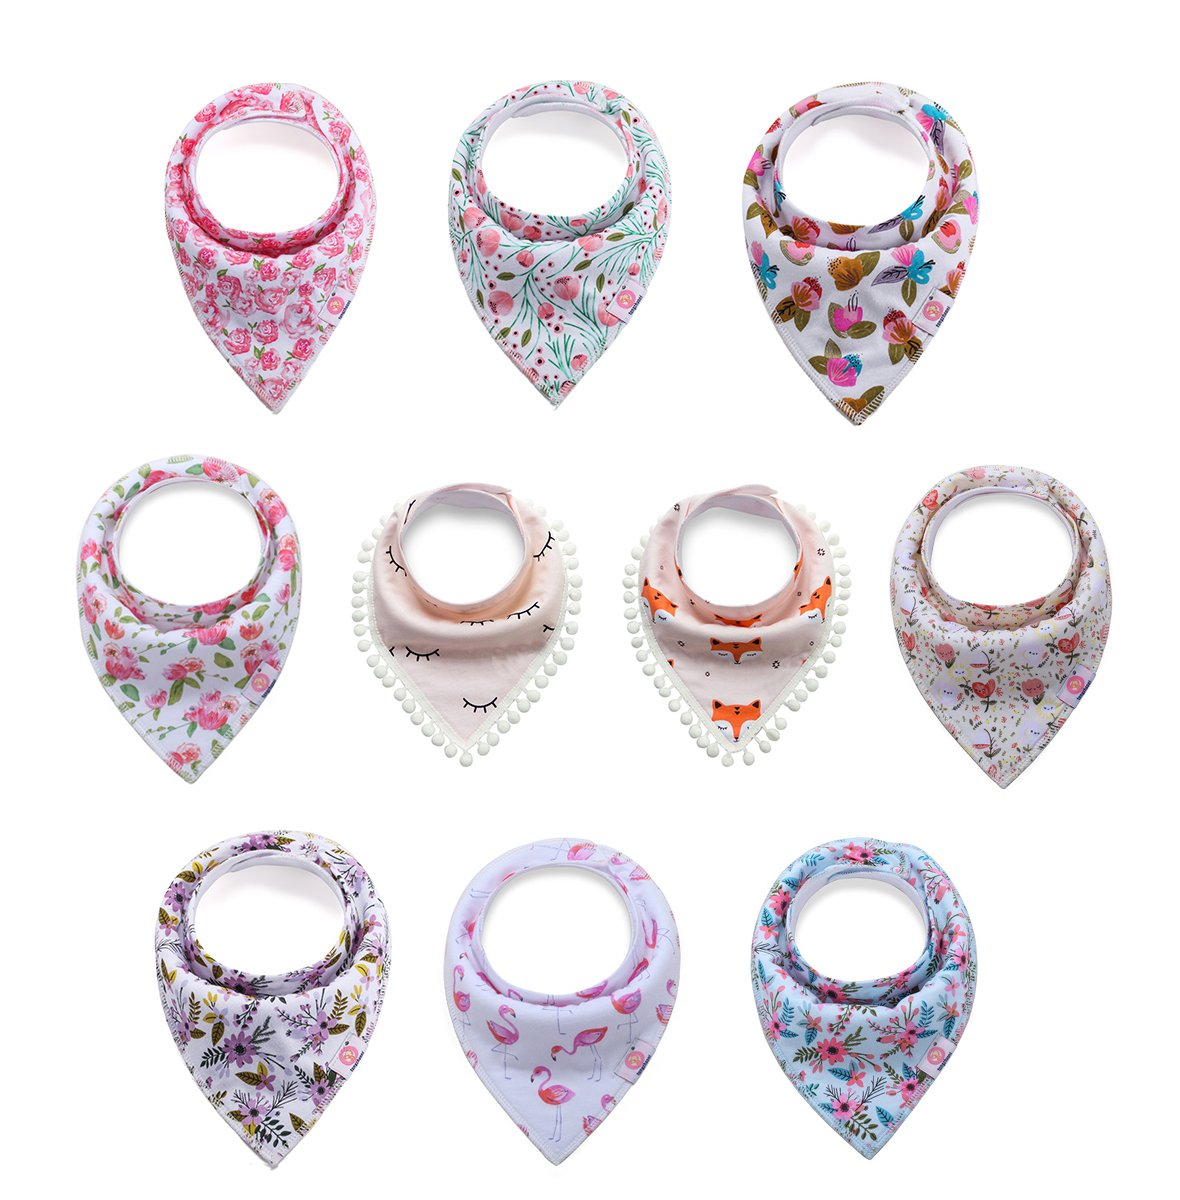 10 Pack Baby Girls Organic Cotton Bandana Drool Bibs for Drooling and Teething, Soft and Absorbent by Litchi Baby